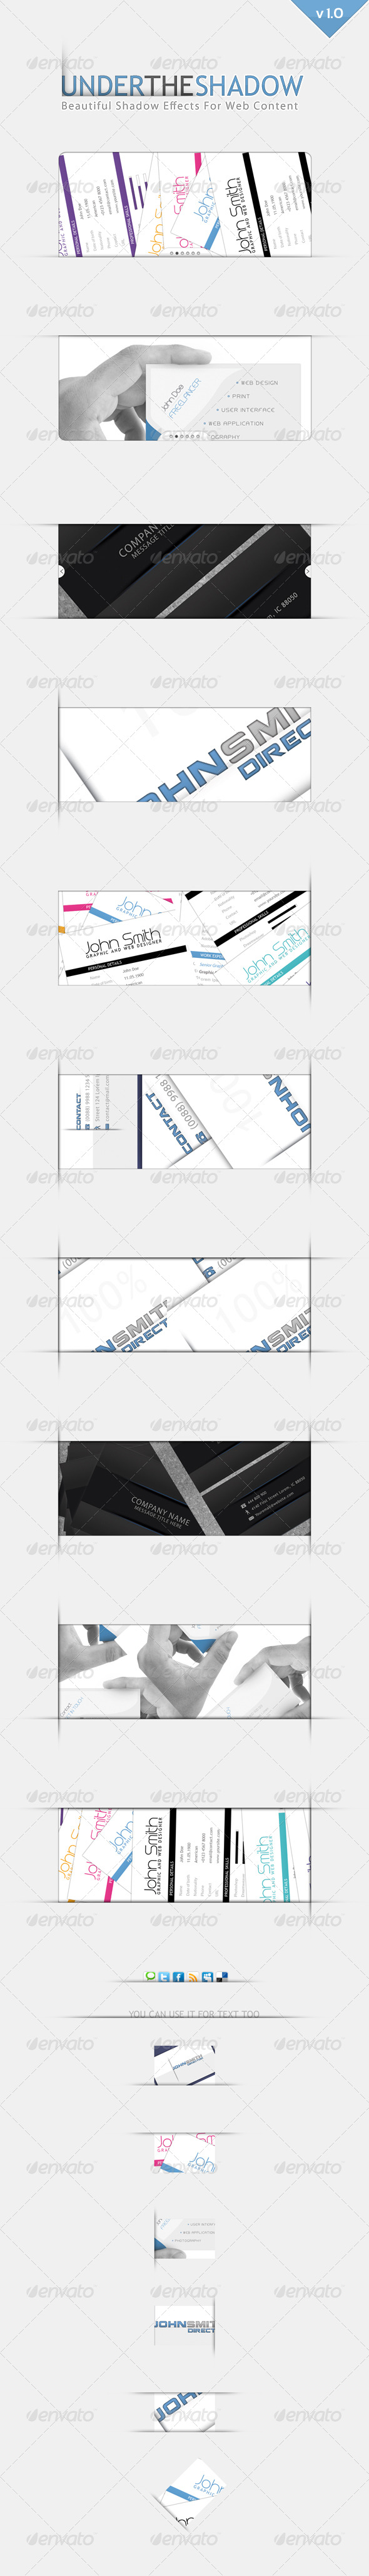 GraphicRiver Under the Shadow Generator for Web Content 240086